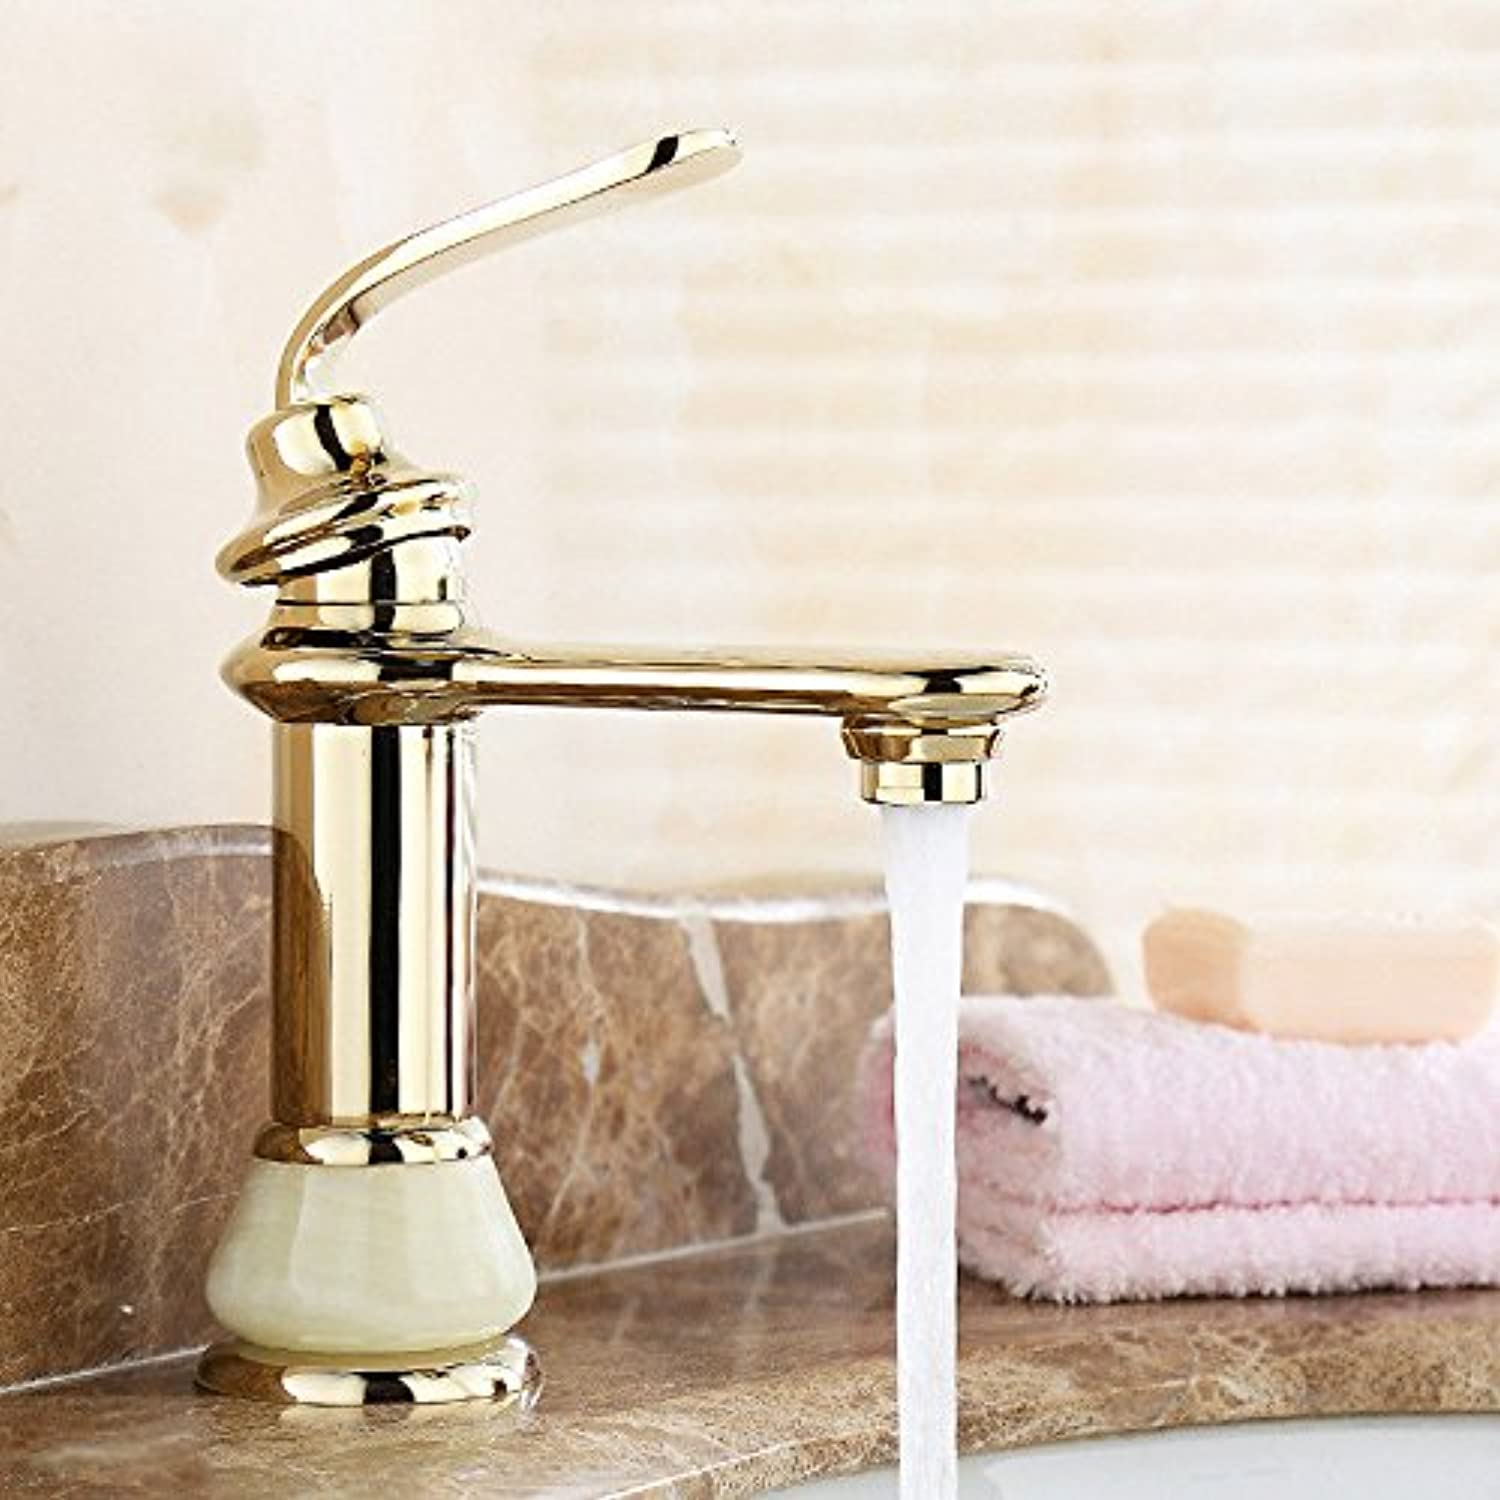 AQMMi Bathroom Vanity Sink Faucet Brass gold Plating Single Lever 1 Hole Single Lever Bathroom Basin Sink Tap Bathroom Faucet